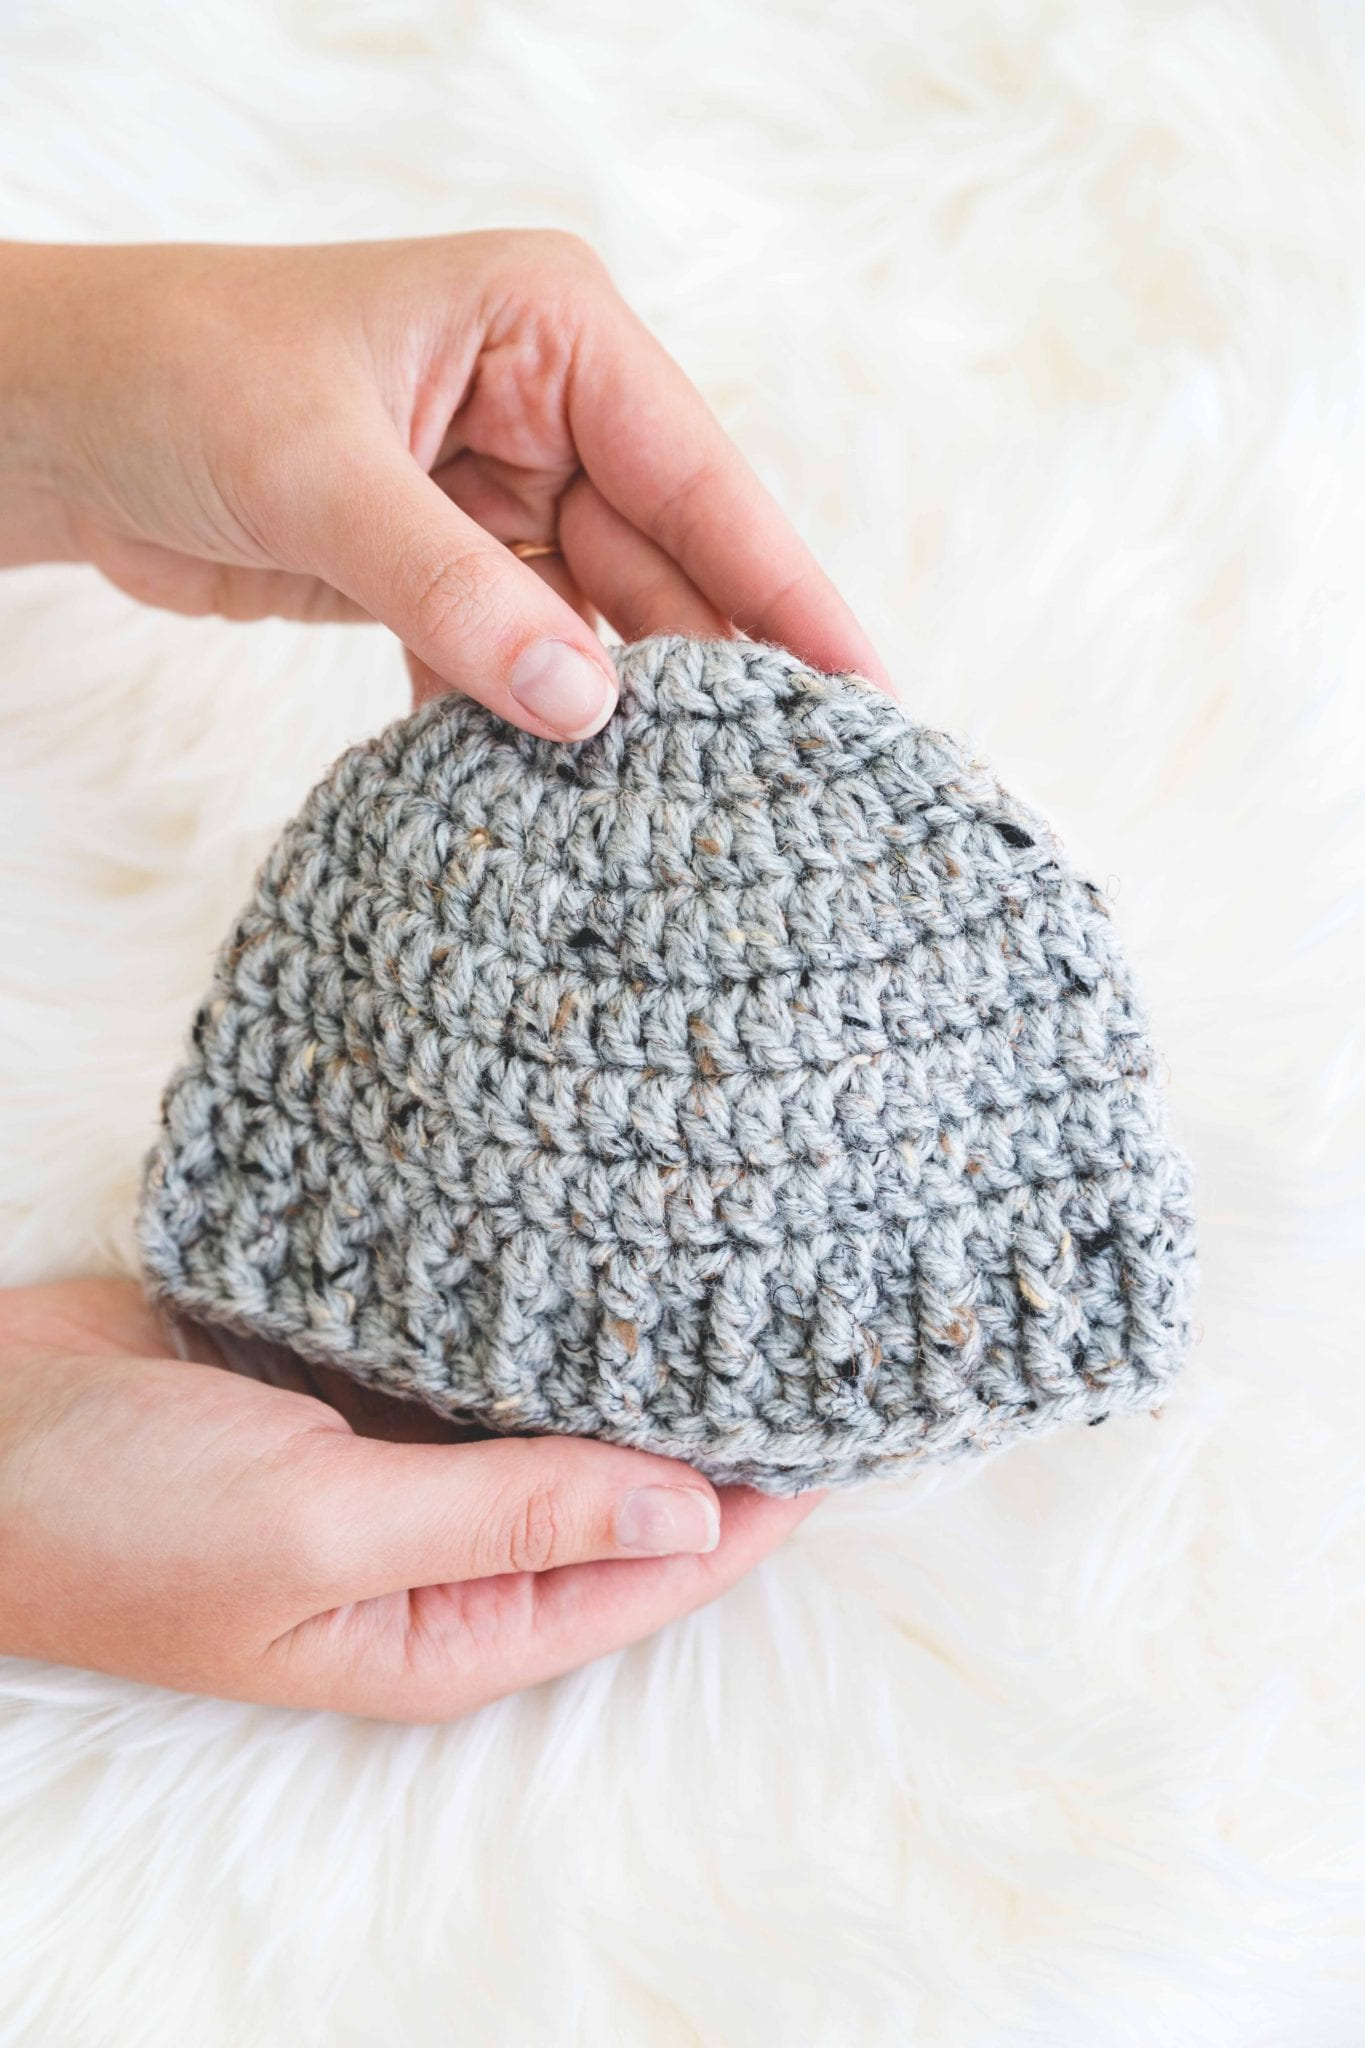 Baby shower gift to crochet, free pattern for the beginner Parker crochet baby hat.